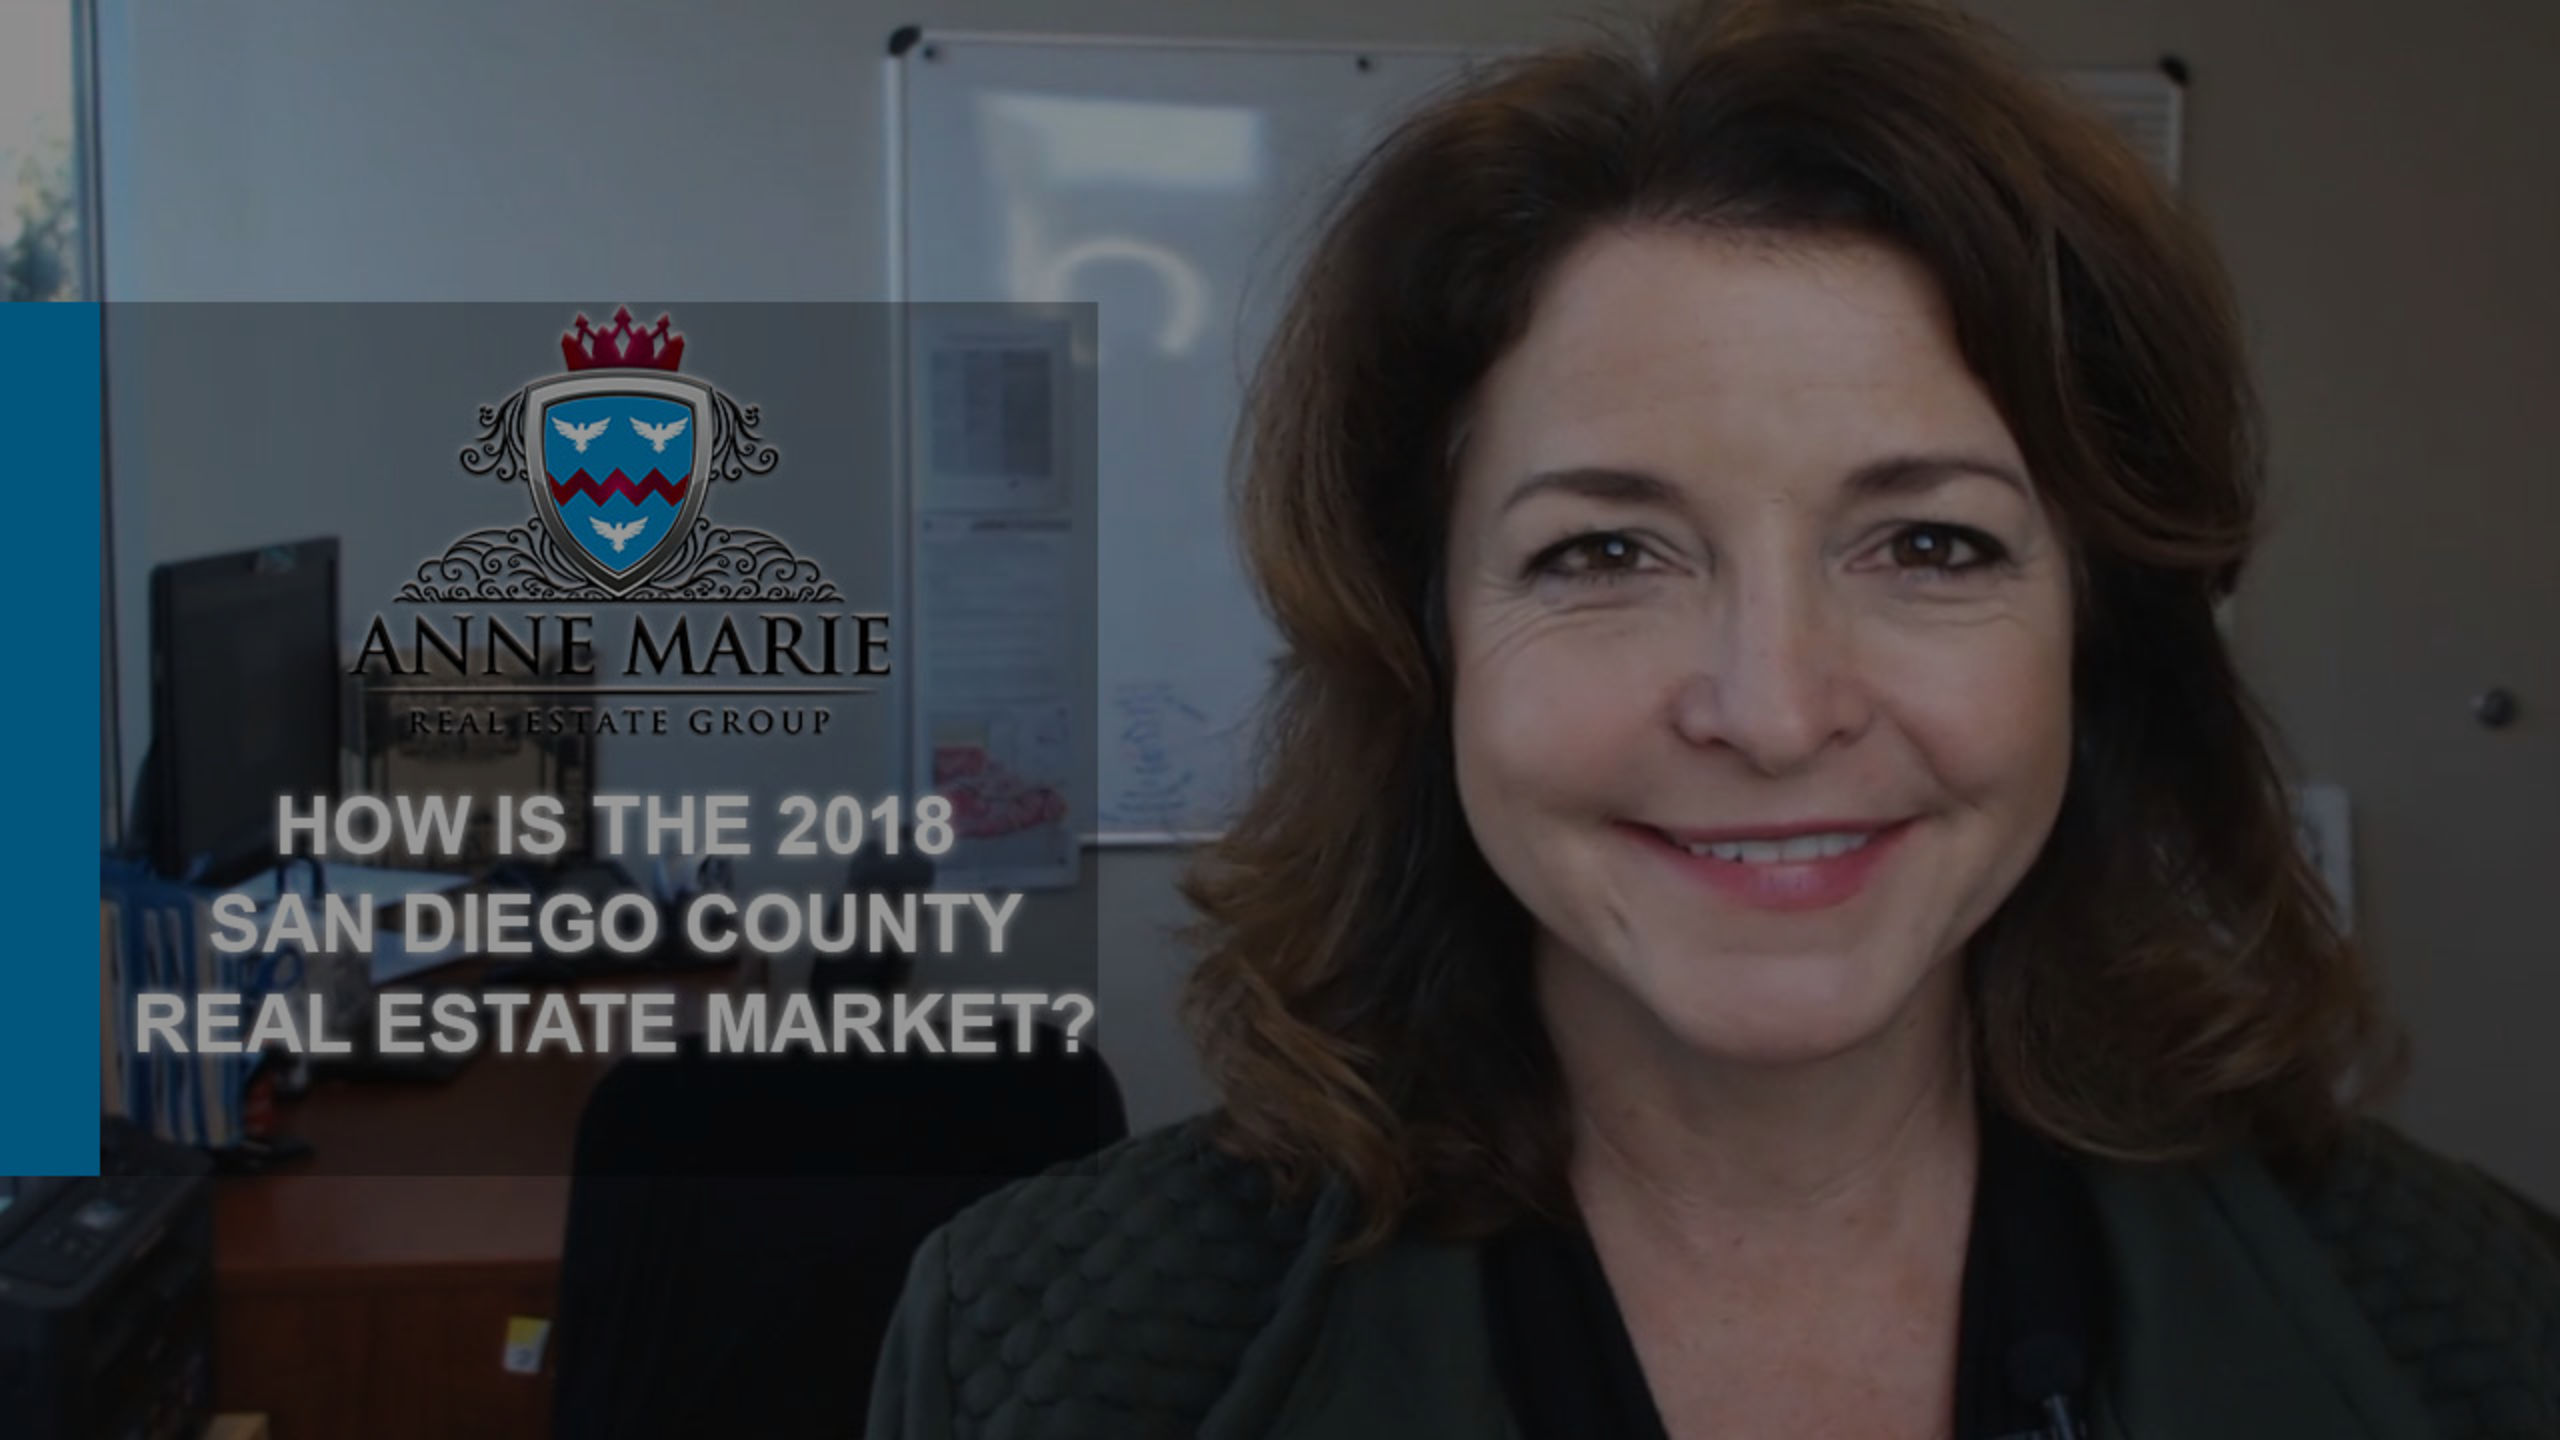 Your 2018 San Diego County Real Estate Market Update